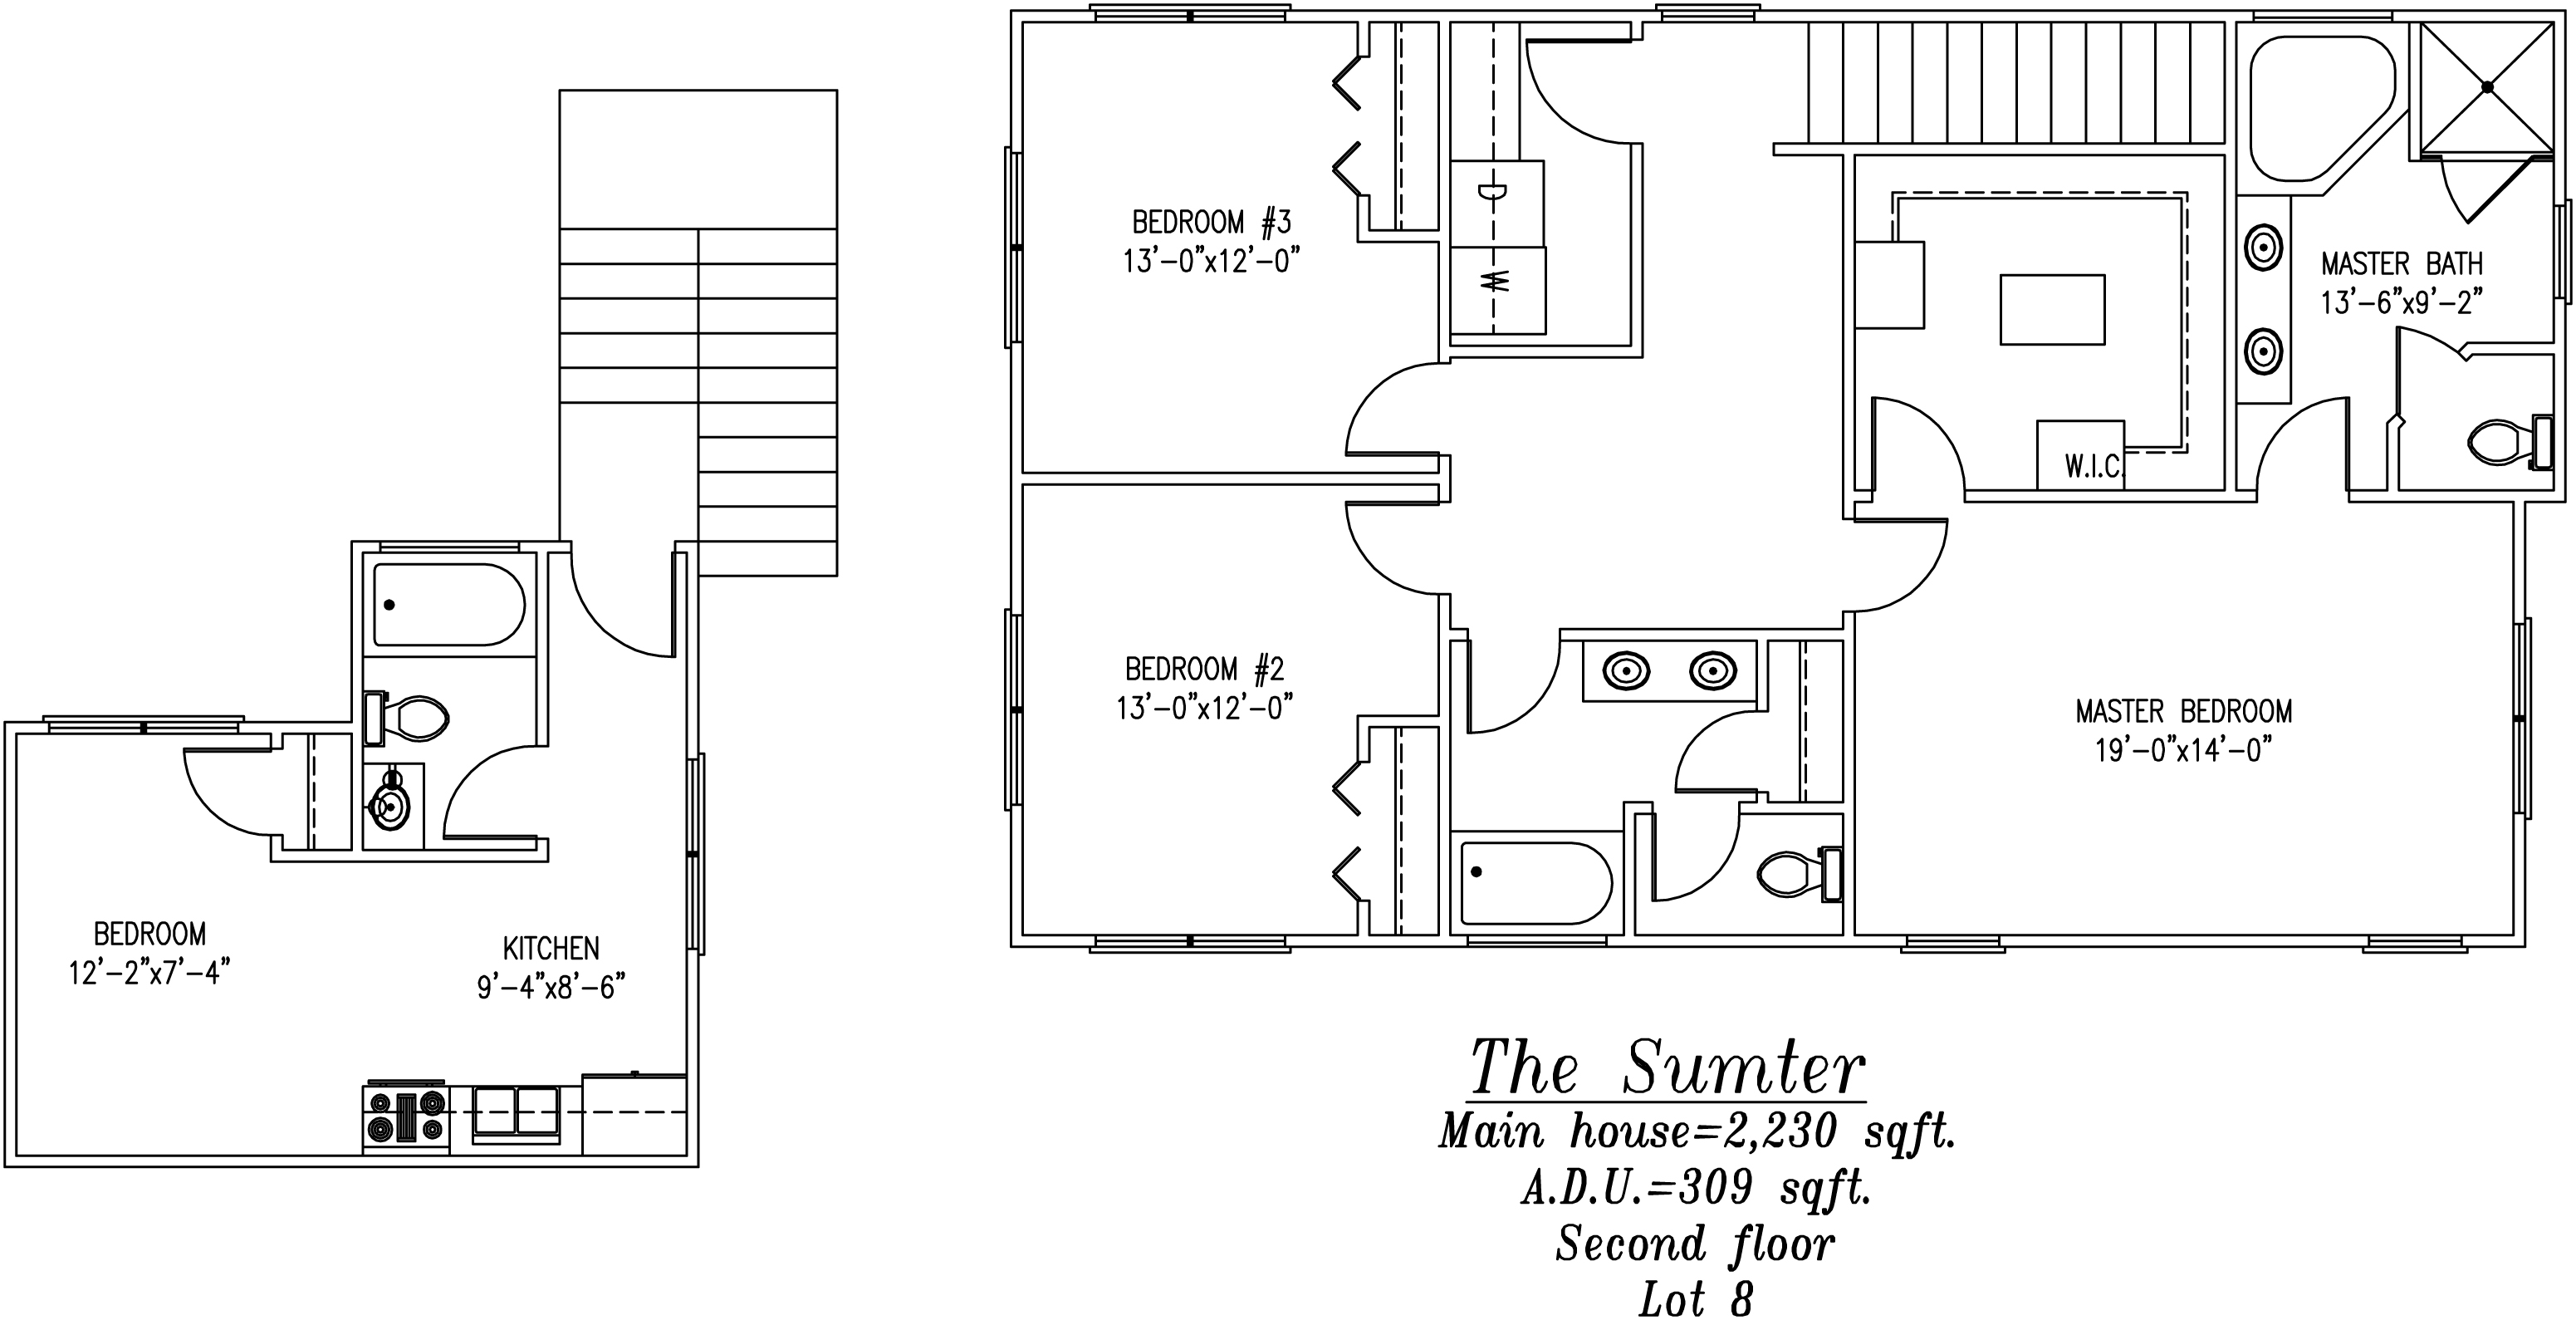 Sumter Second floor Plan